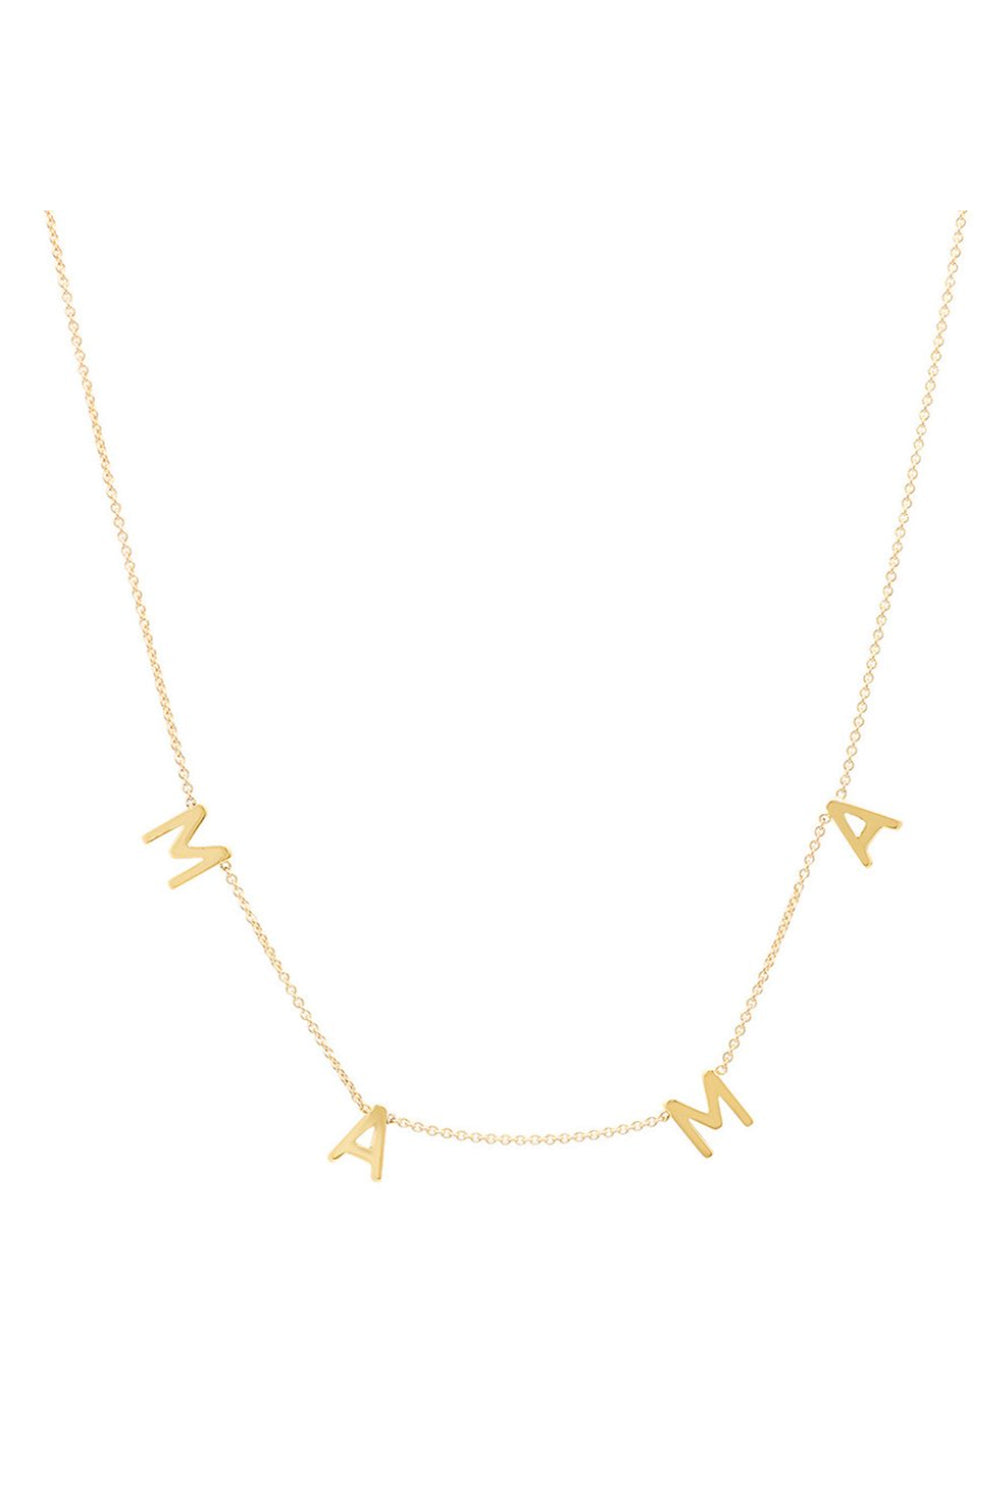 BYCHARI Spaced MAMA Necklace in 14K